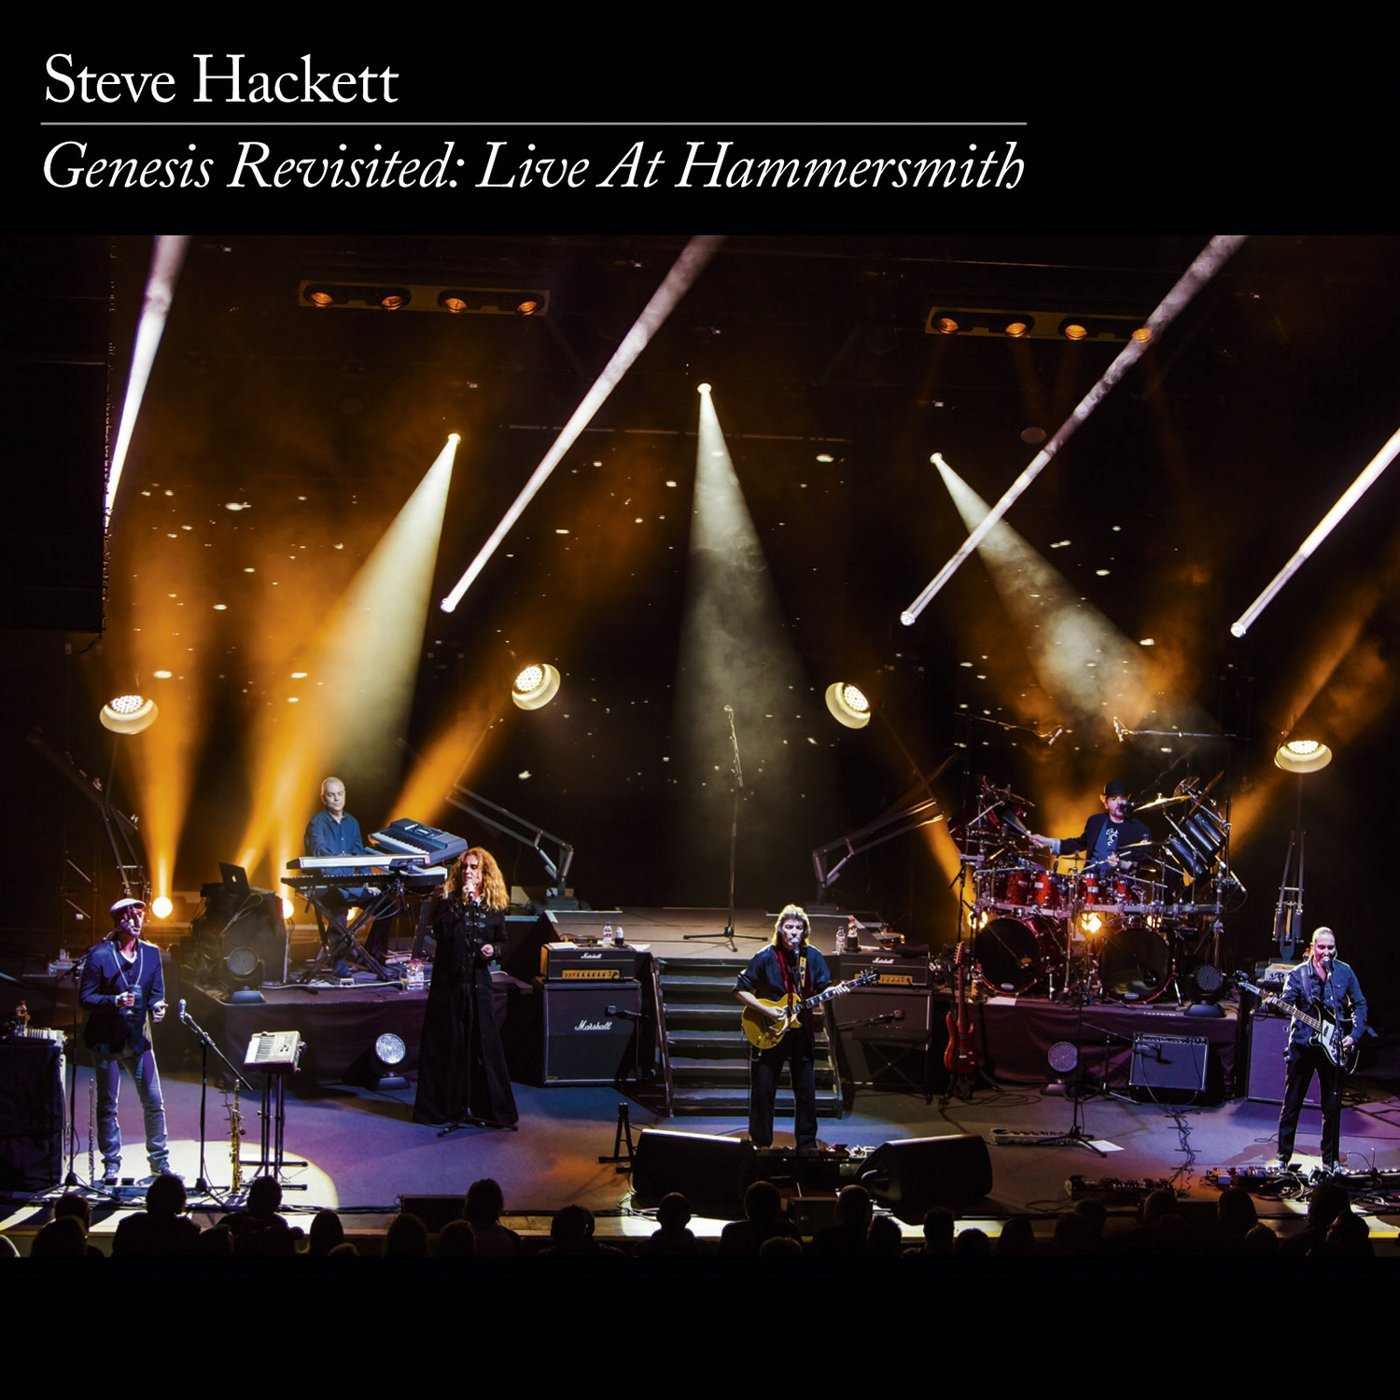 Steve Hackett – Genesis Revisited Live at Hammersmith CD/DVD Review